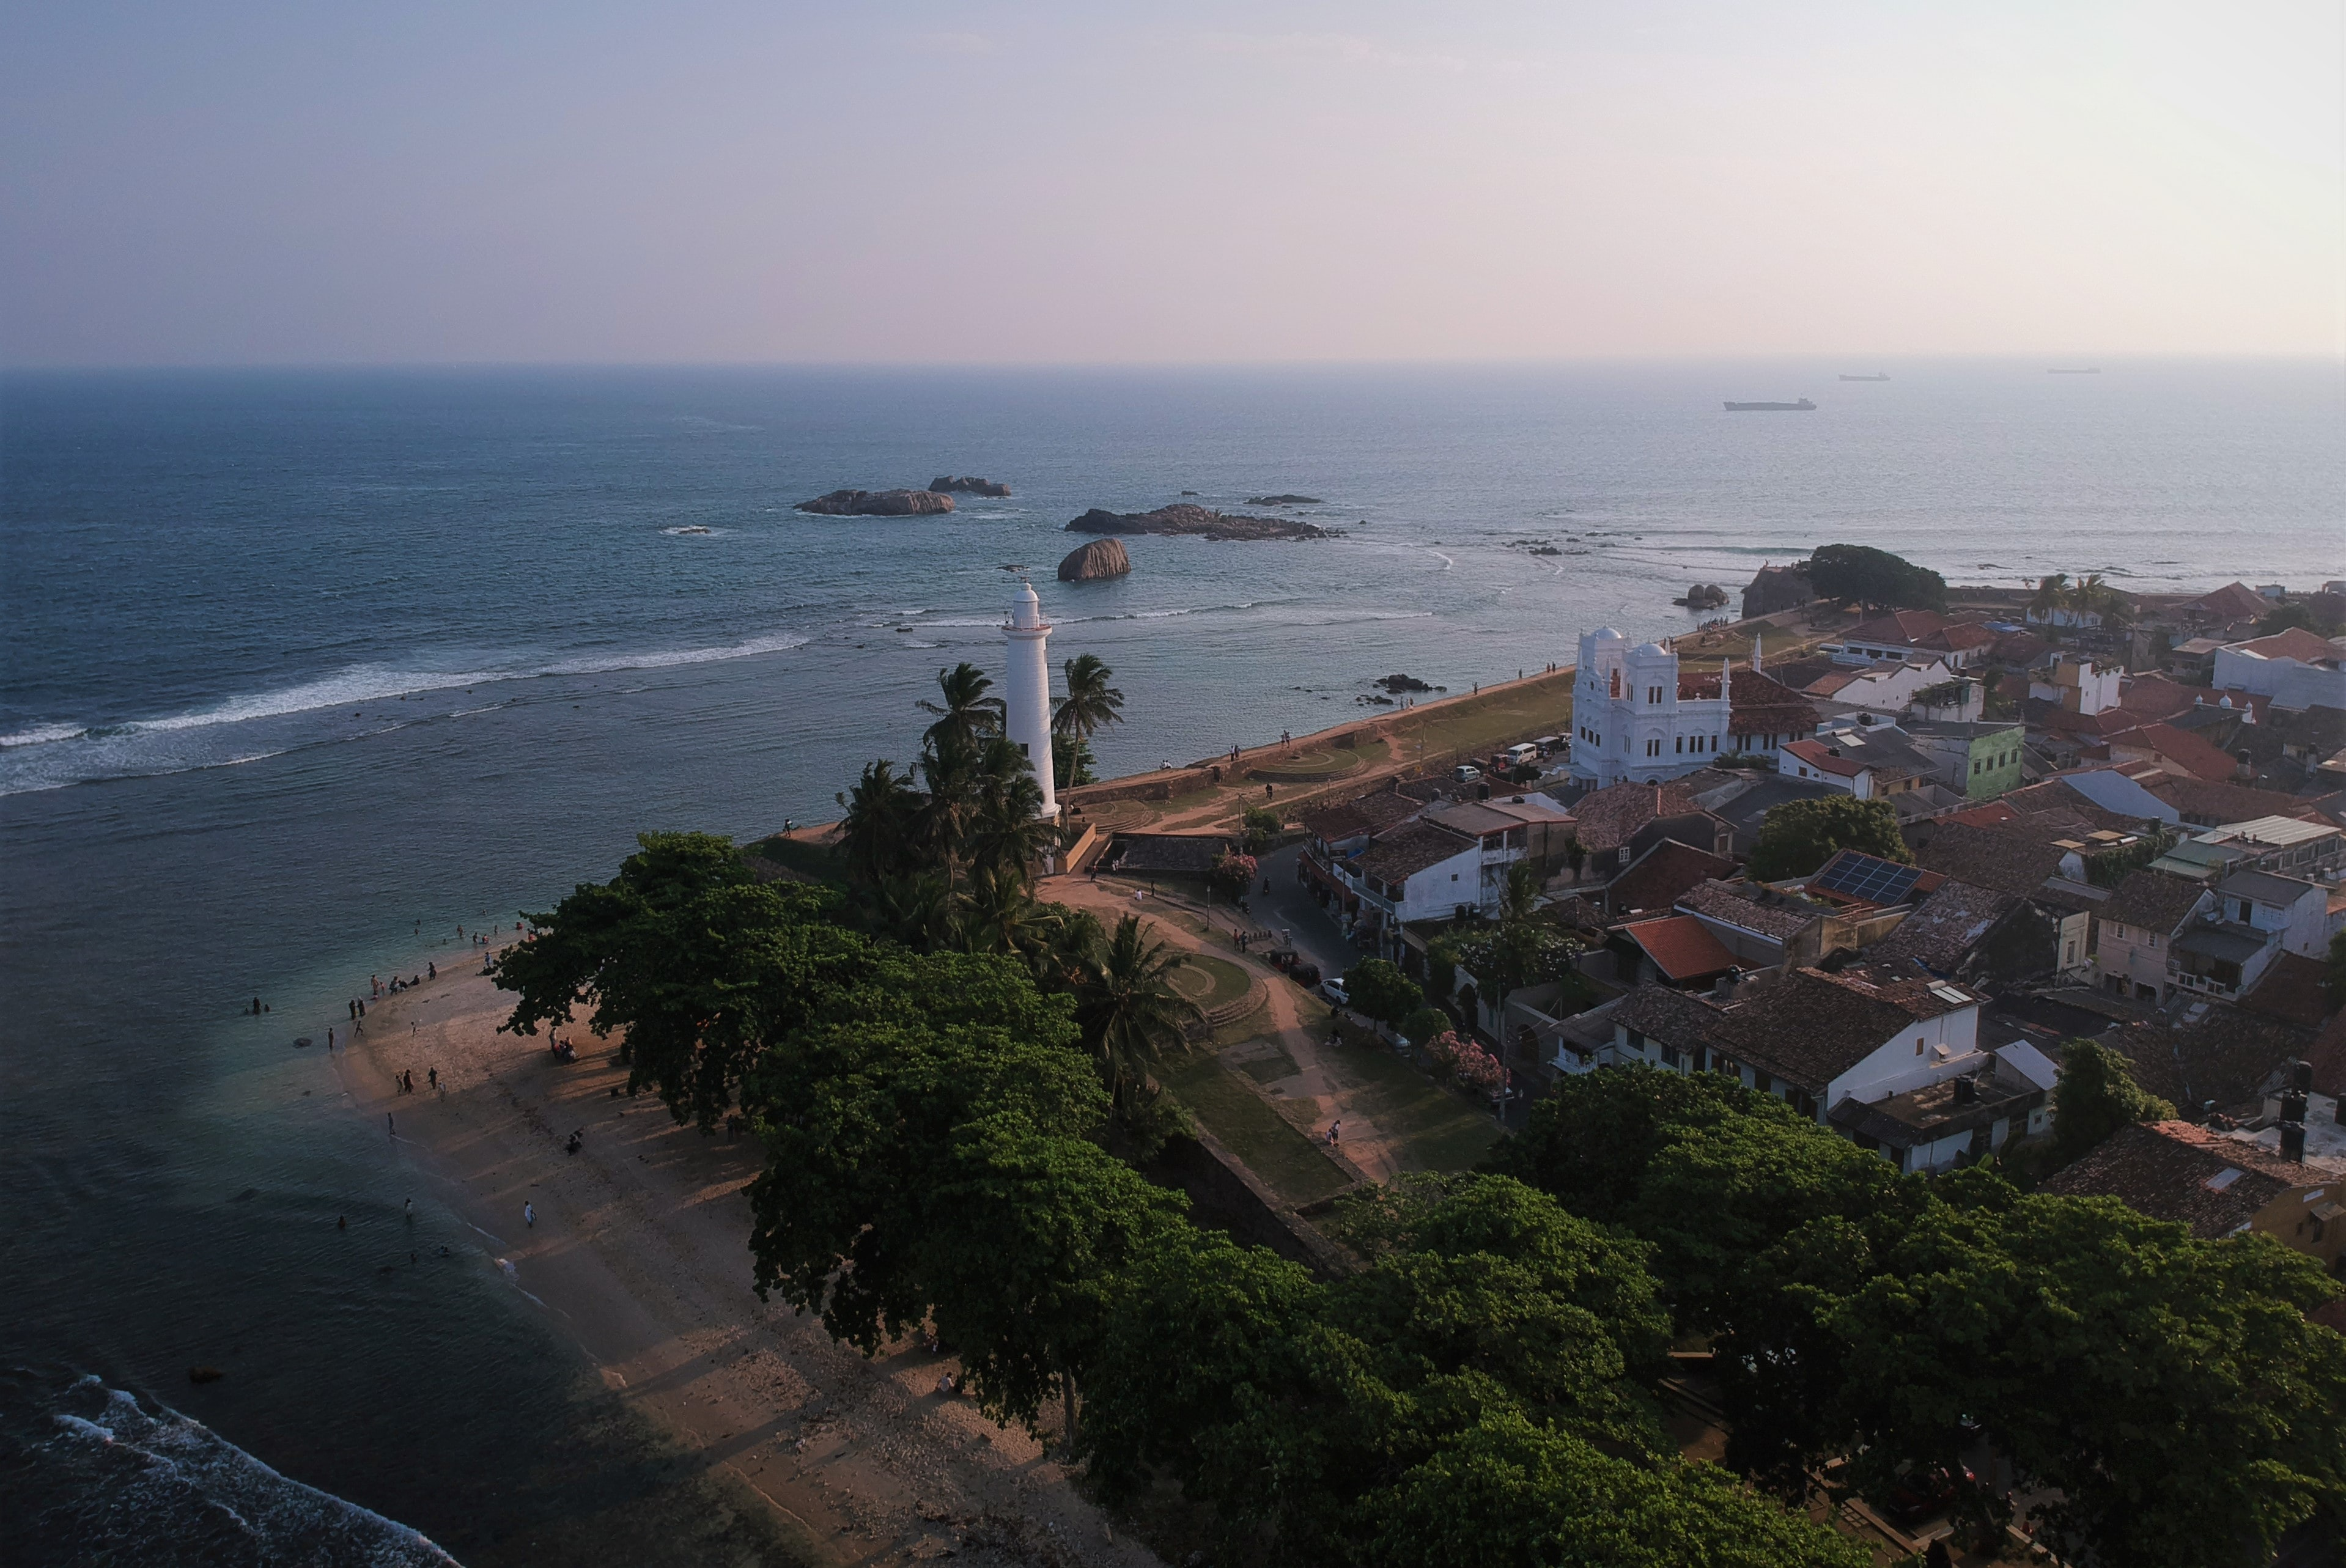 Galle, one of the most beautiful cities in Sri Lanka